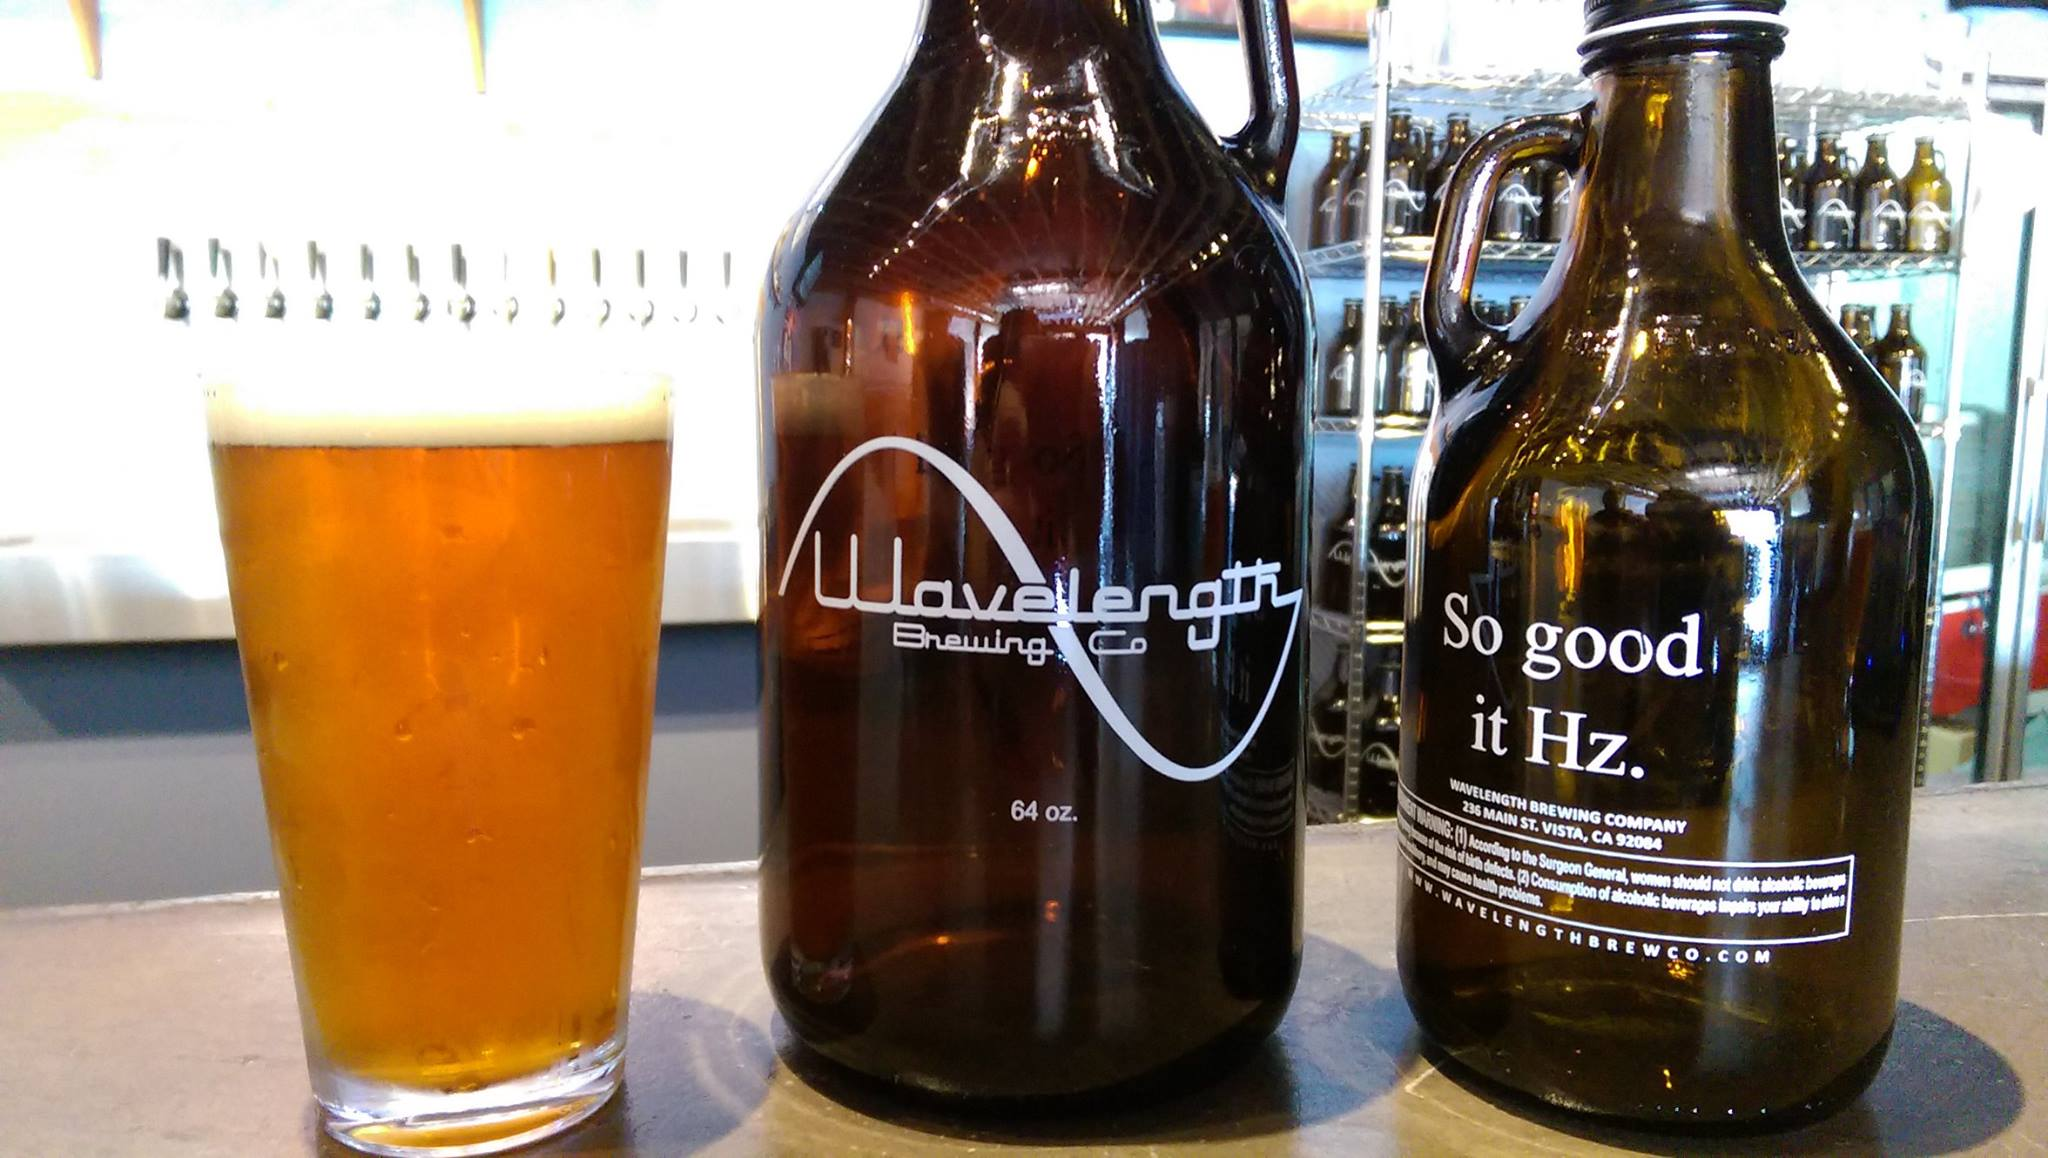 Wavelength Brewing Co